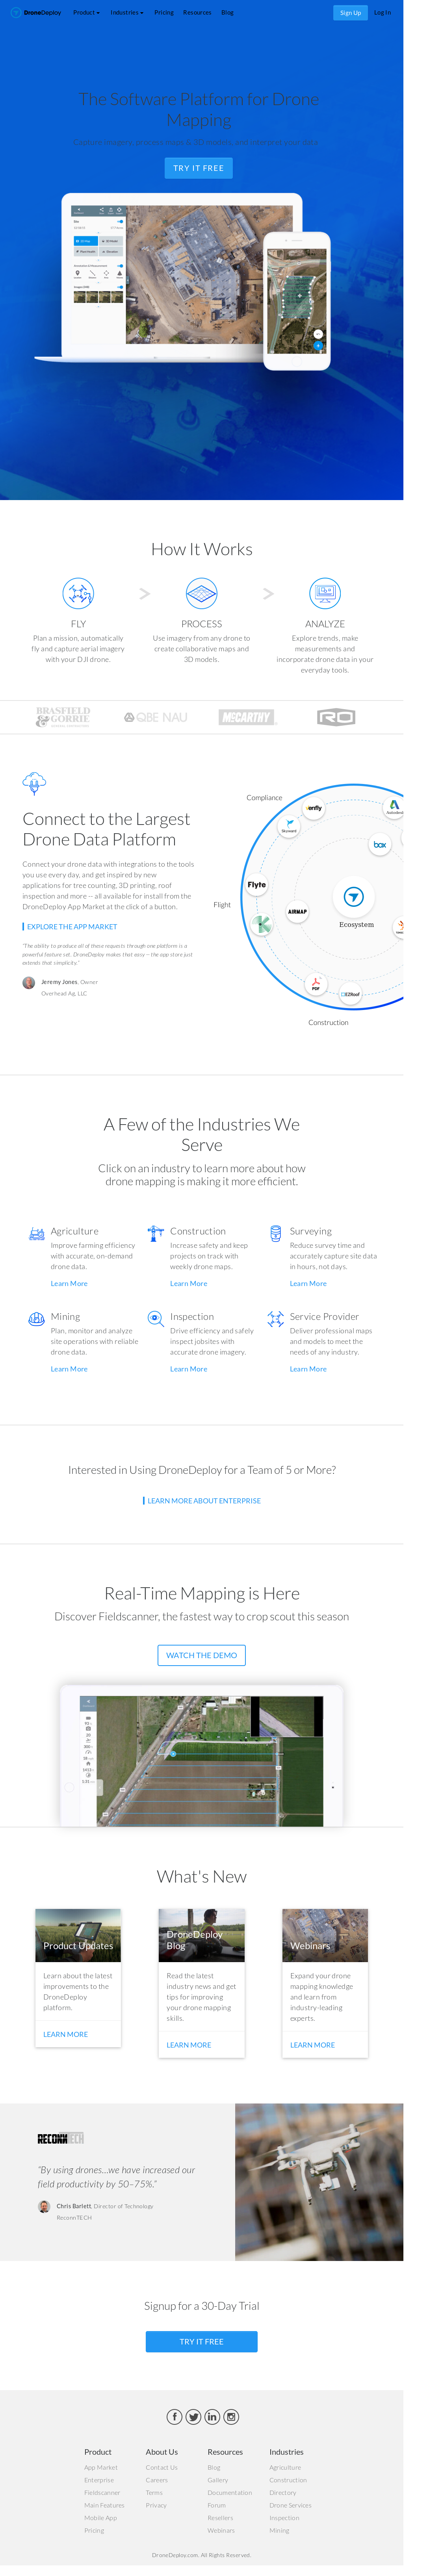 DroneDeploy Competitors, Revenue and Employees - Owler